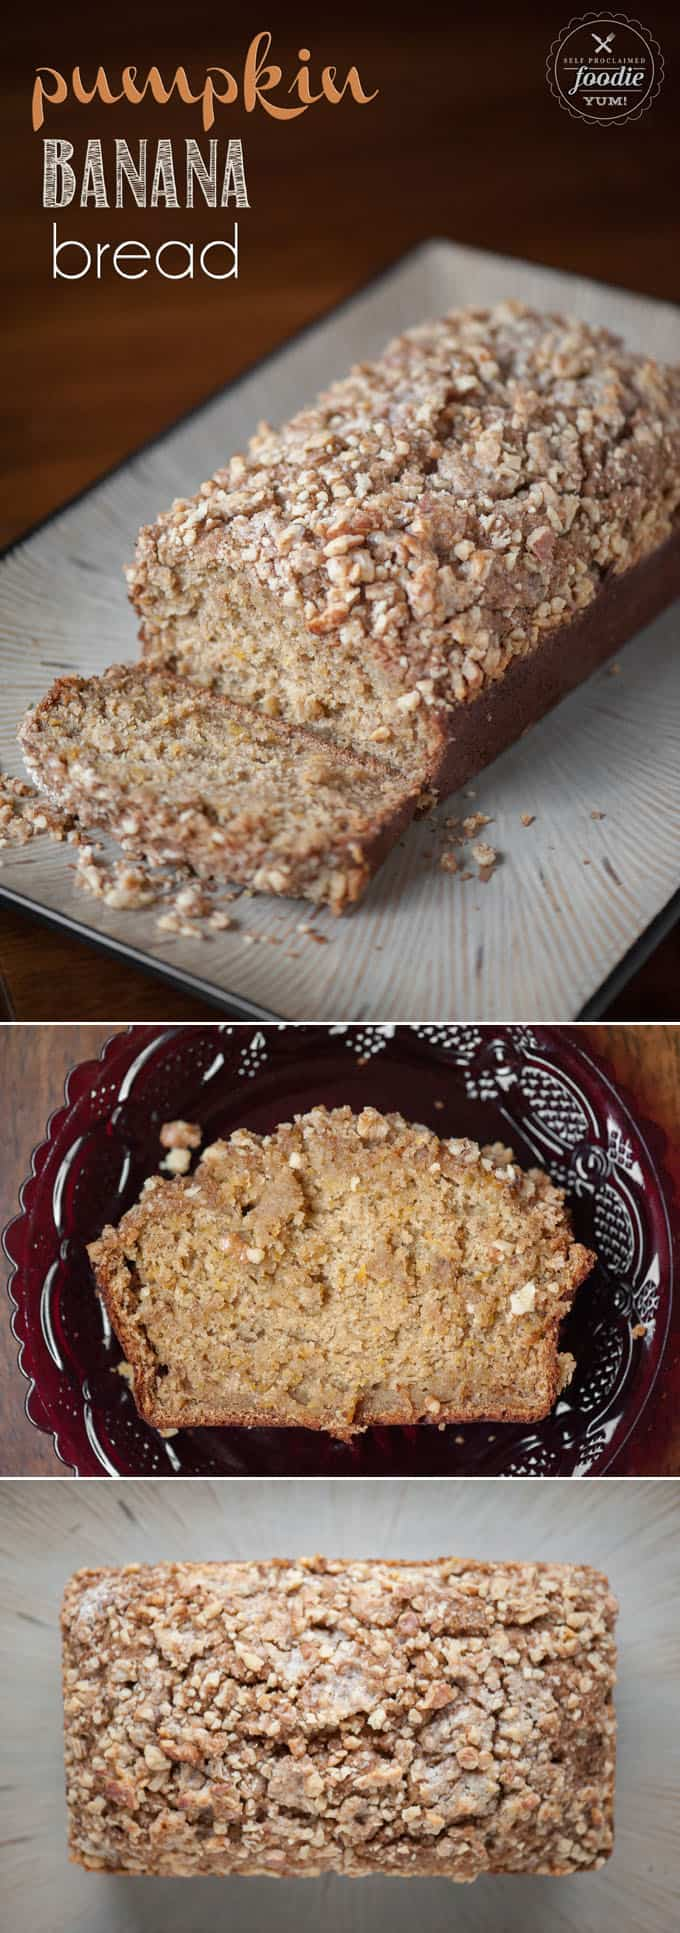 Pumpkin Banana Bread with Walnut Streusel topping celebrates the best of fall. The pumpkin and banana make it the most moist banana bread ever!